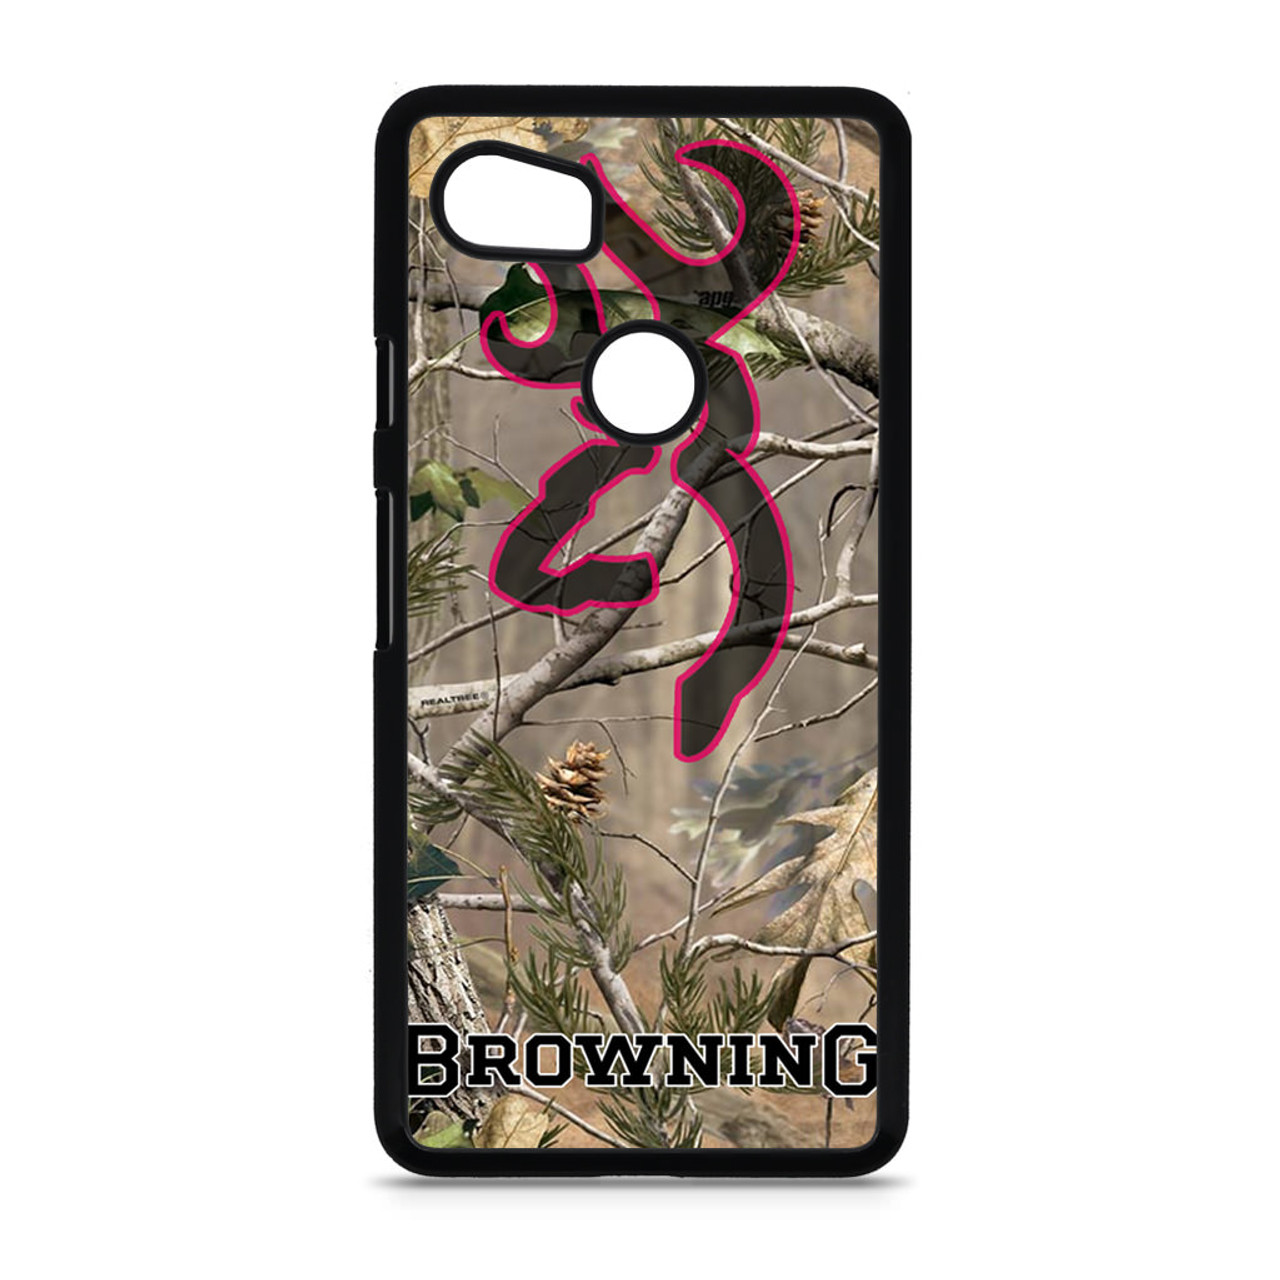 newest collection 20f10 bb007 Browning Deer Camo Browning Google Pixel 2 XL Case